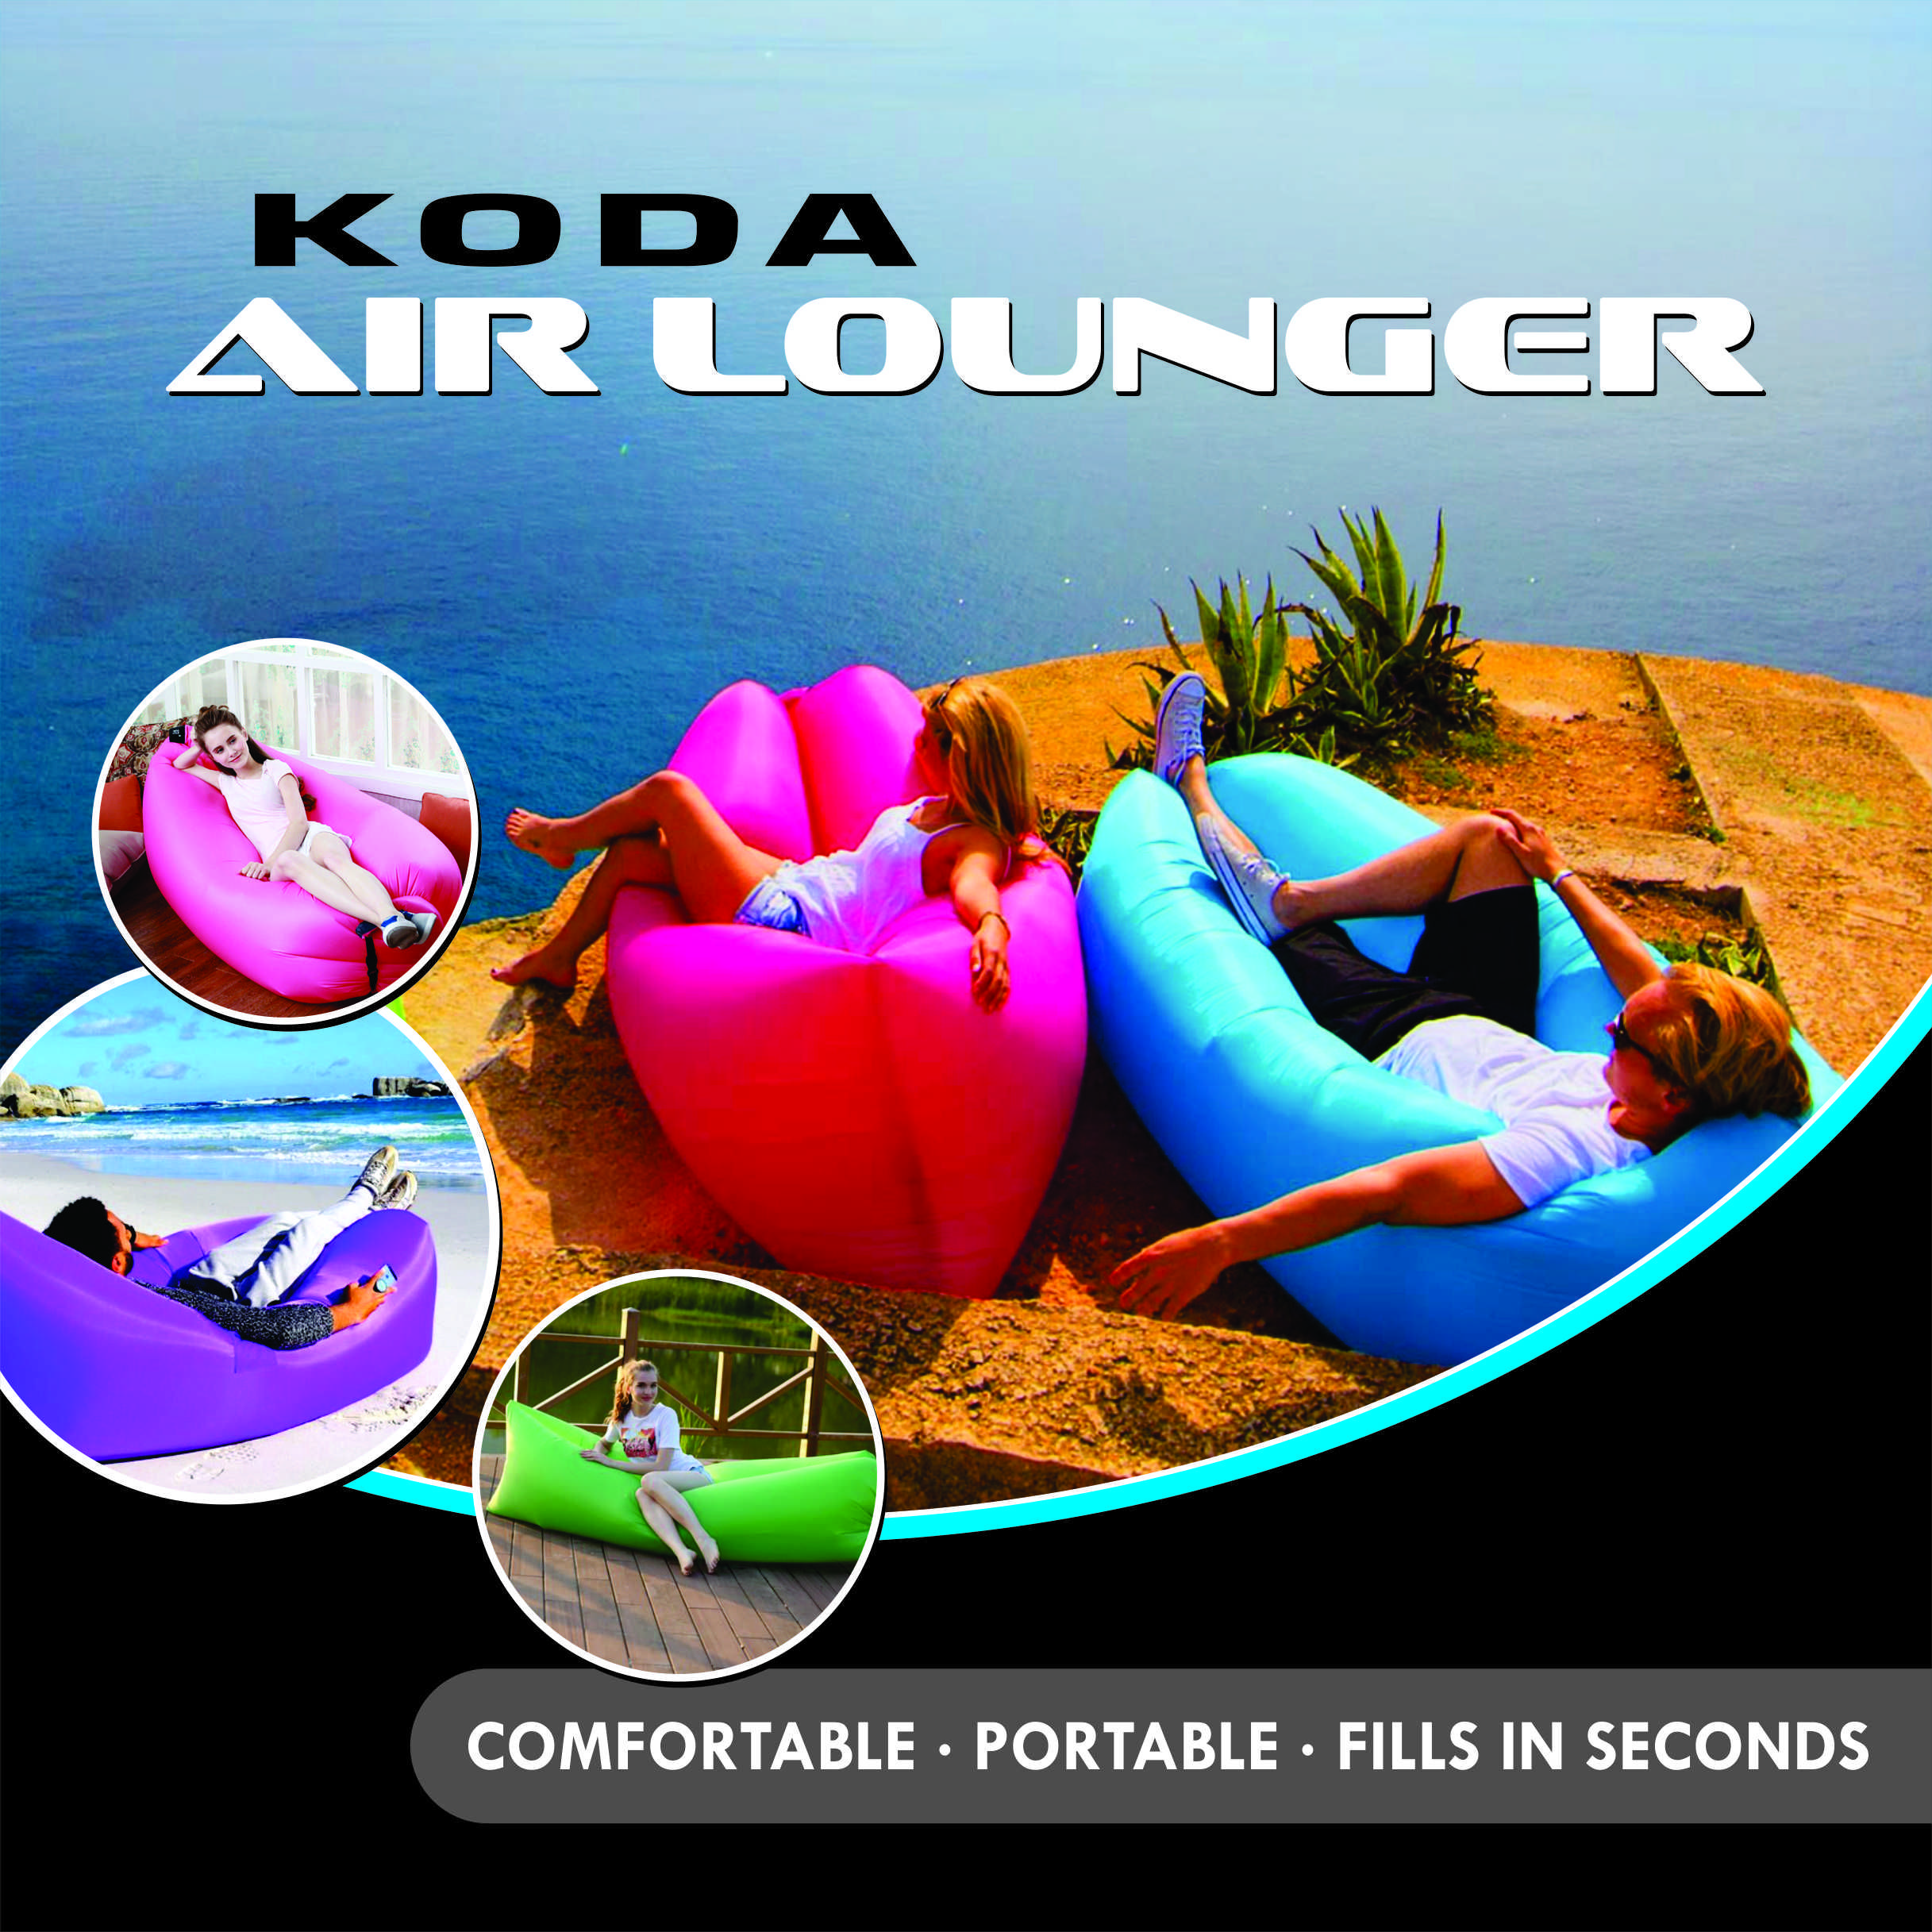 KODA AIR LOUNGER now available at Makro stores nationwide ...